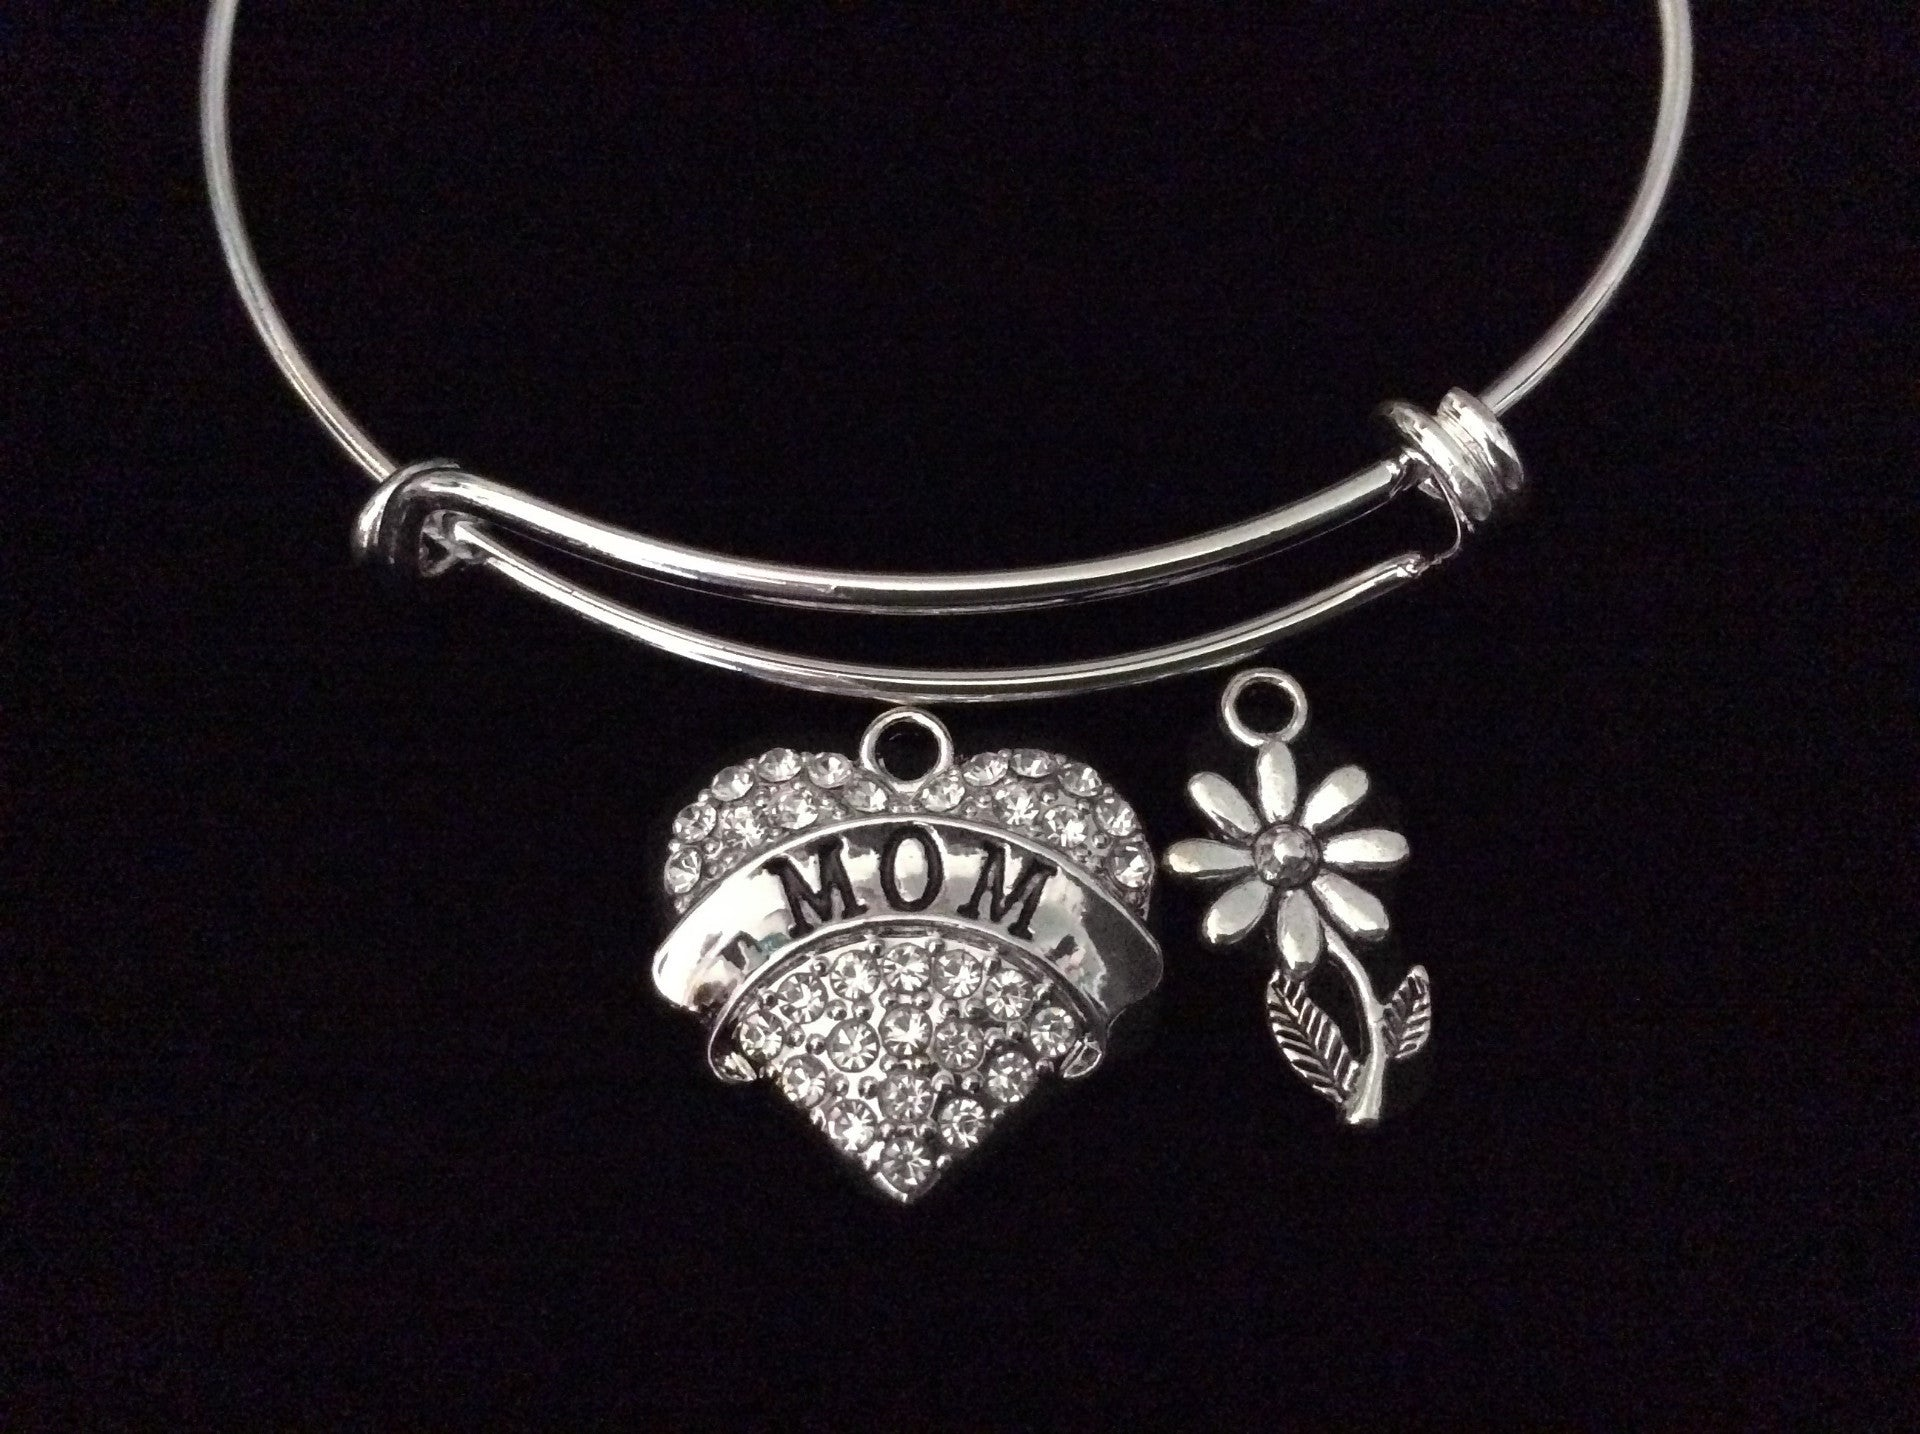 77ec198553f0c Mothers Day Special Daisy Expandable Charm Bracelet Silver Adjustable  Bangle Trendy Gift Mom